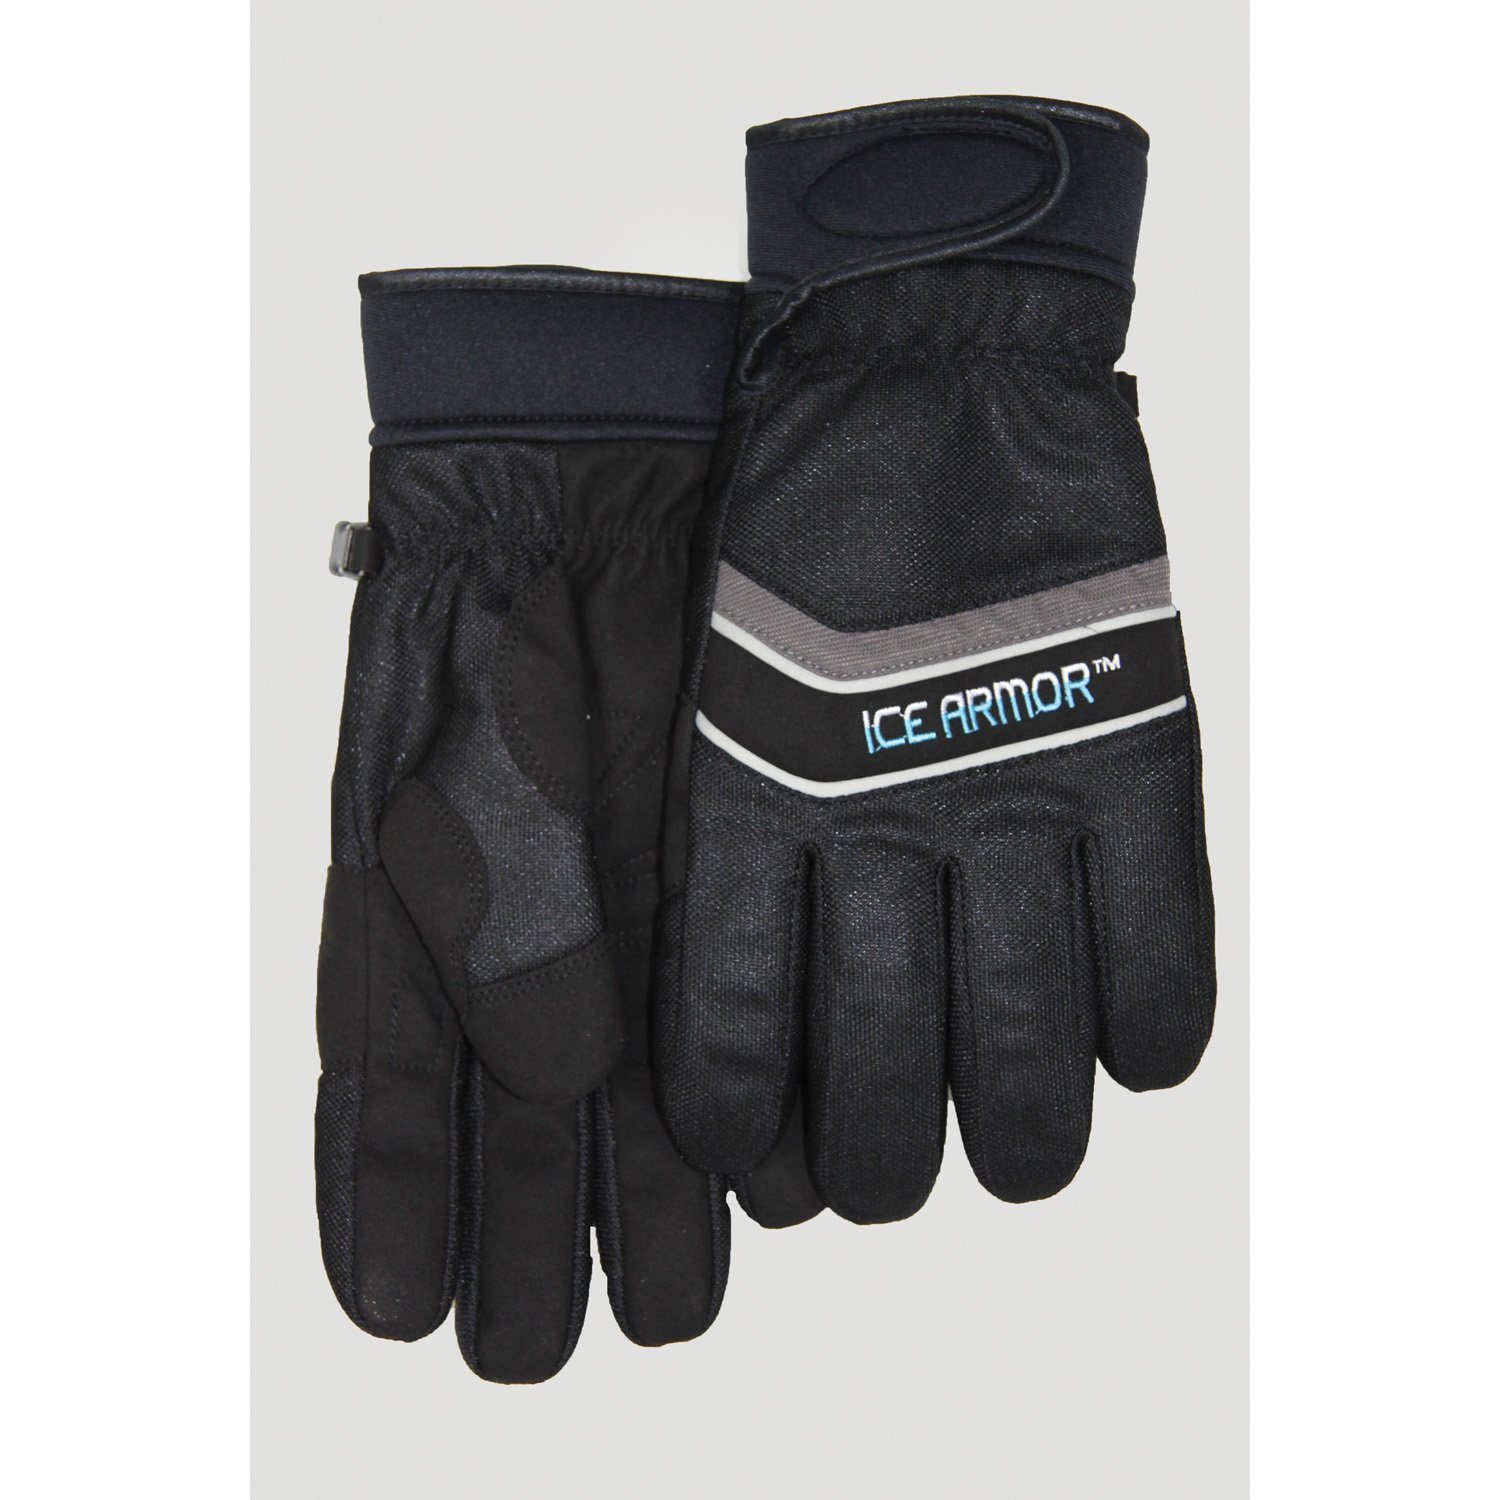 Edge Glove Windproof Large Waterproof and Breathable Clam Corporation 4350308828